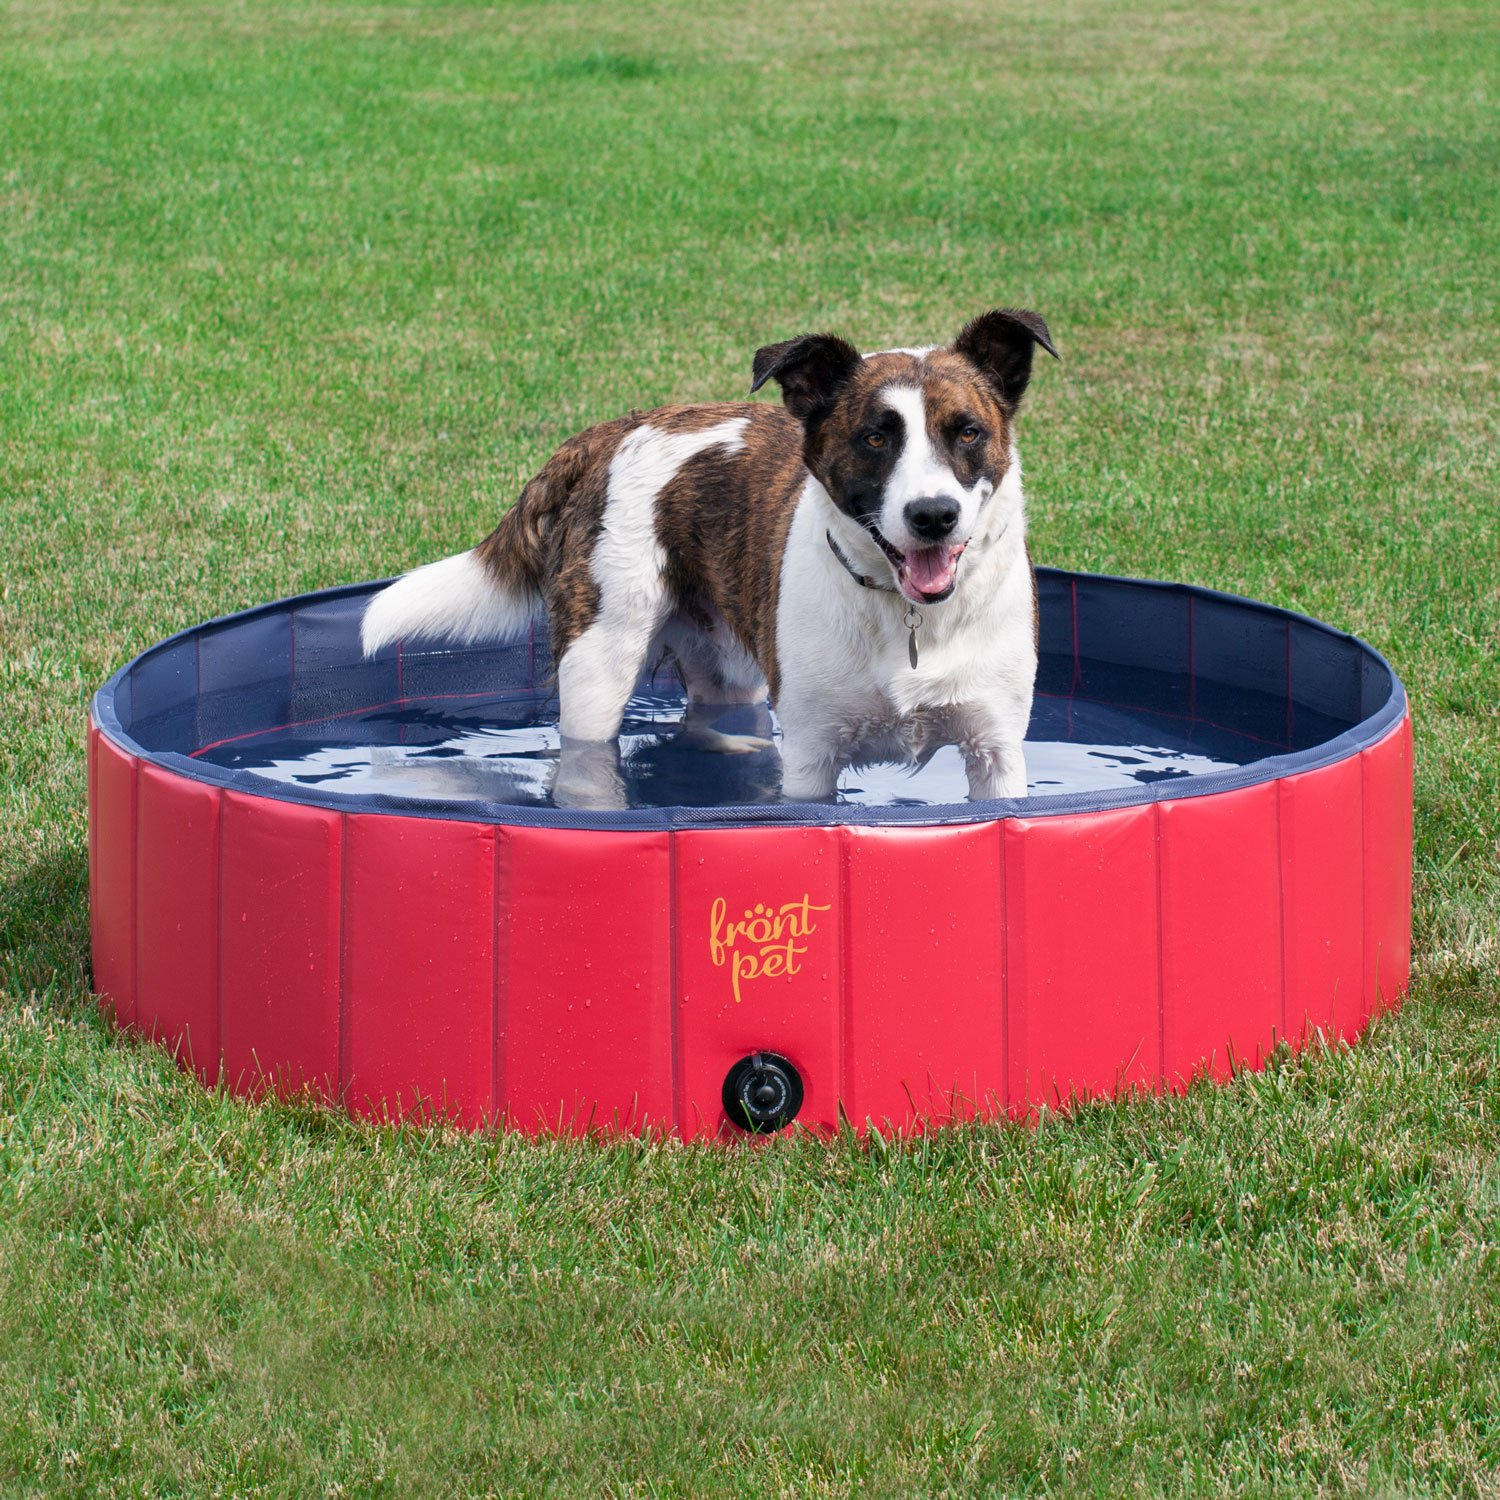 Best Dog Pool-Overall: FrontPet Foldable Bathing Tub